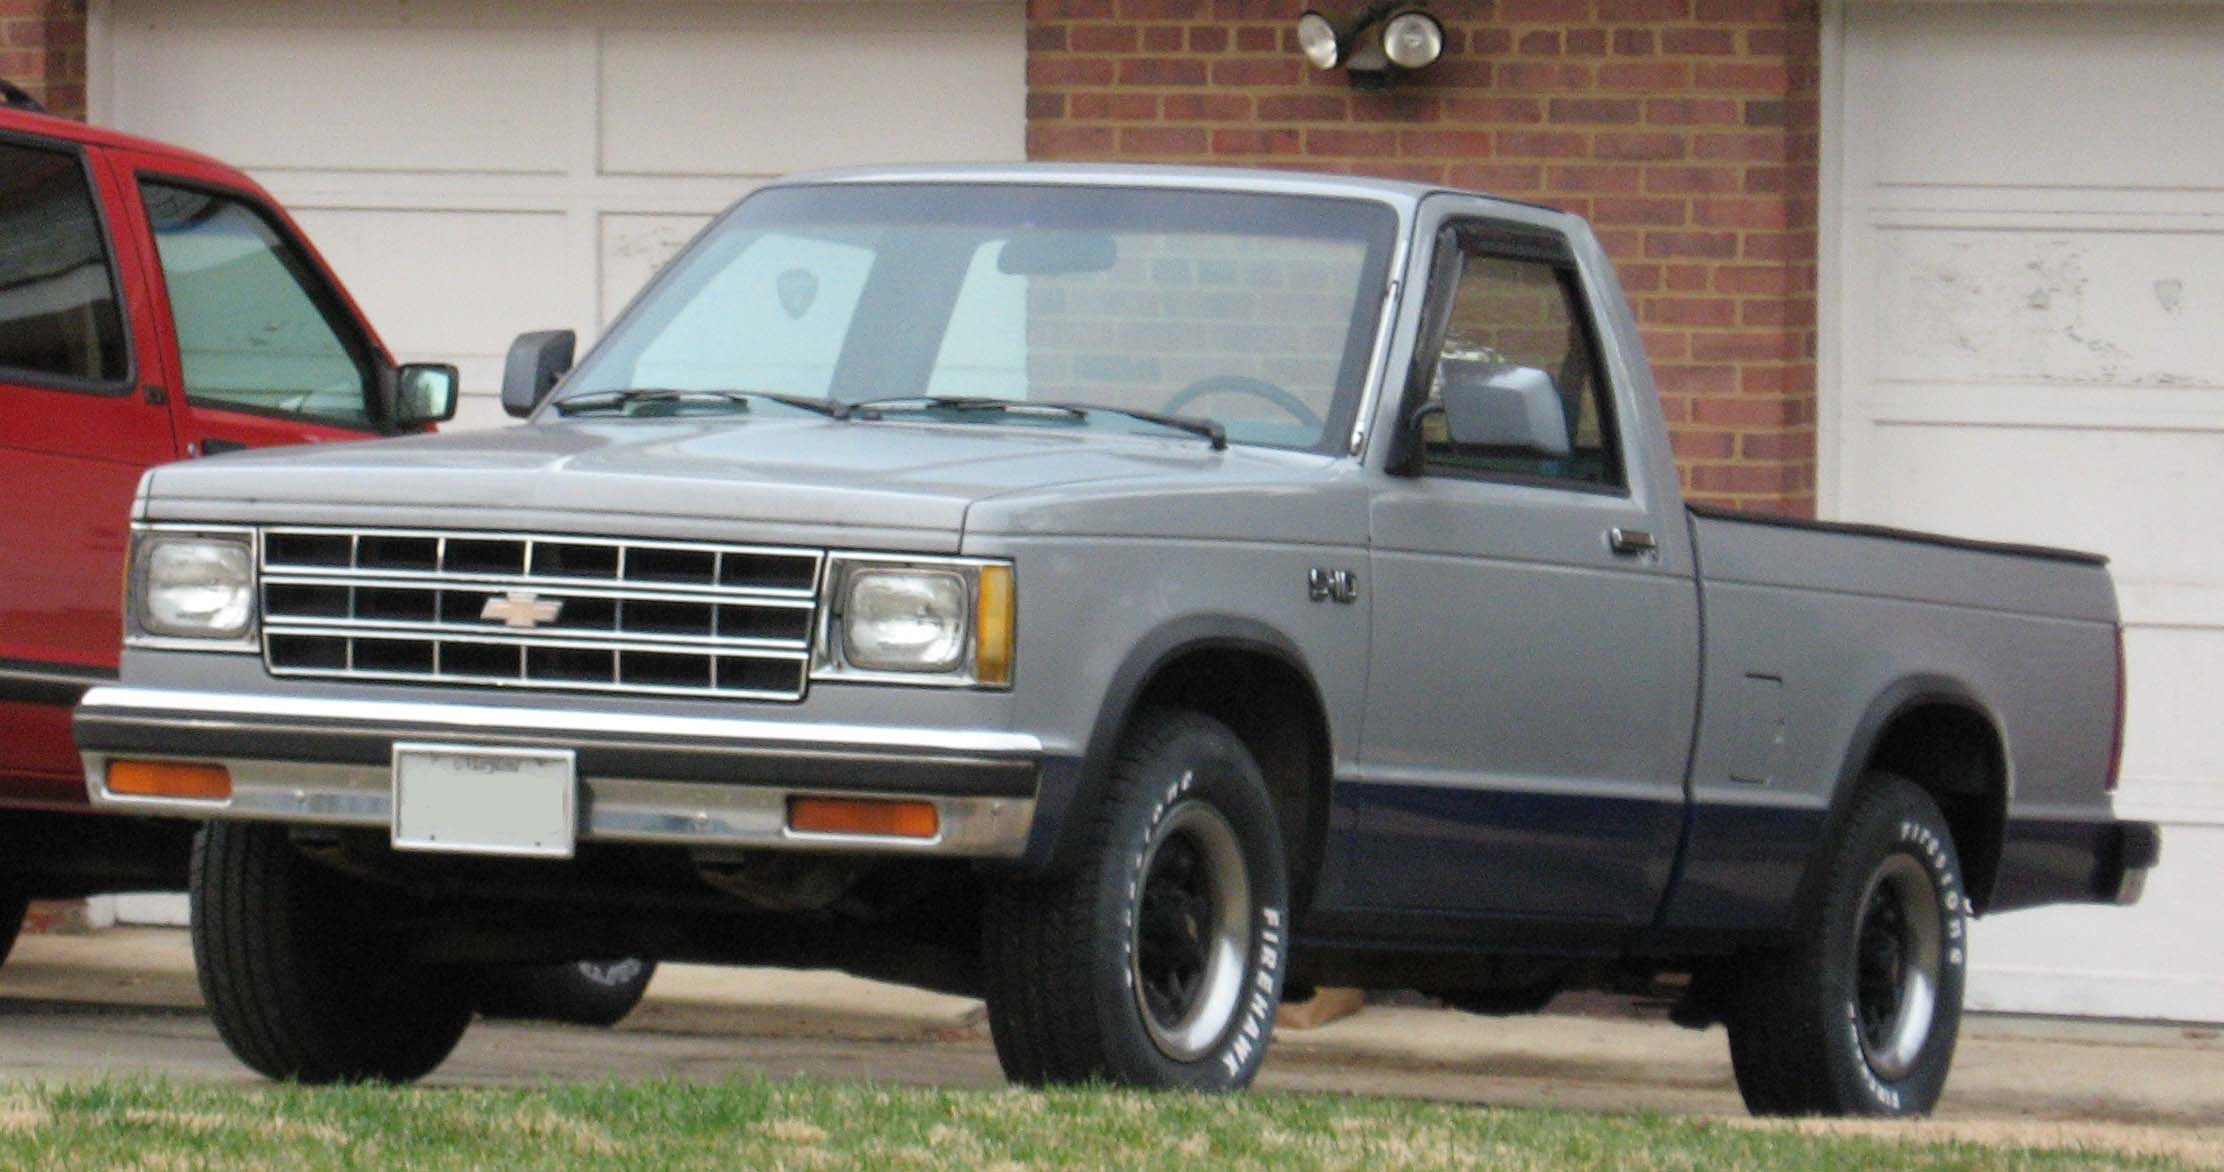 Alfa img - Showing > Chevy S10 Models